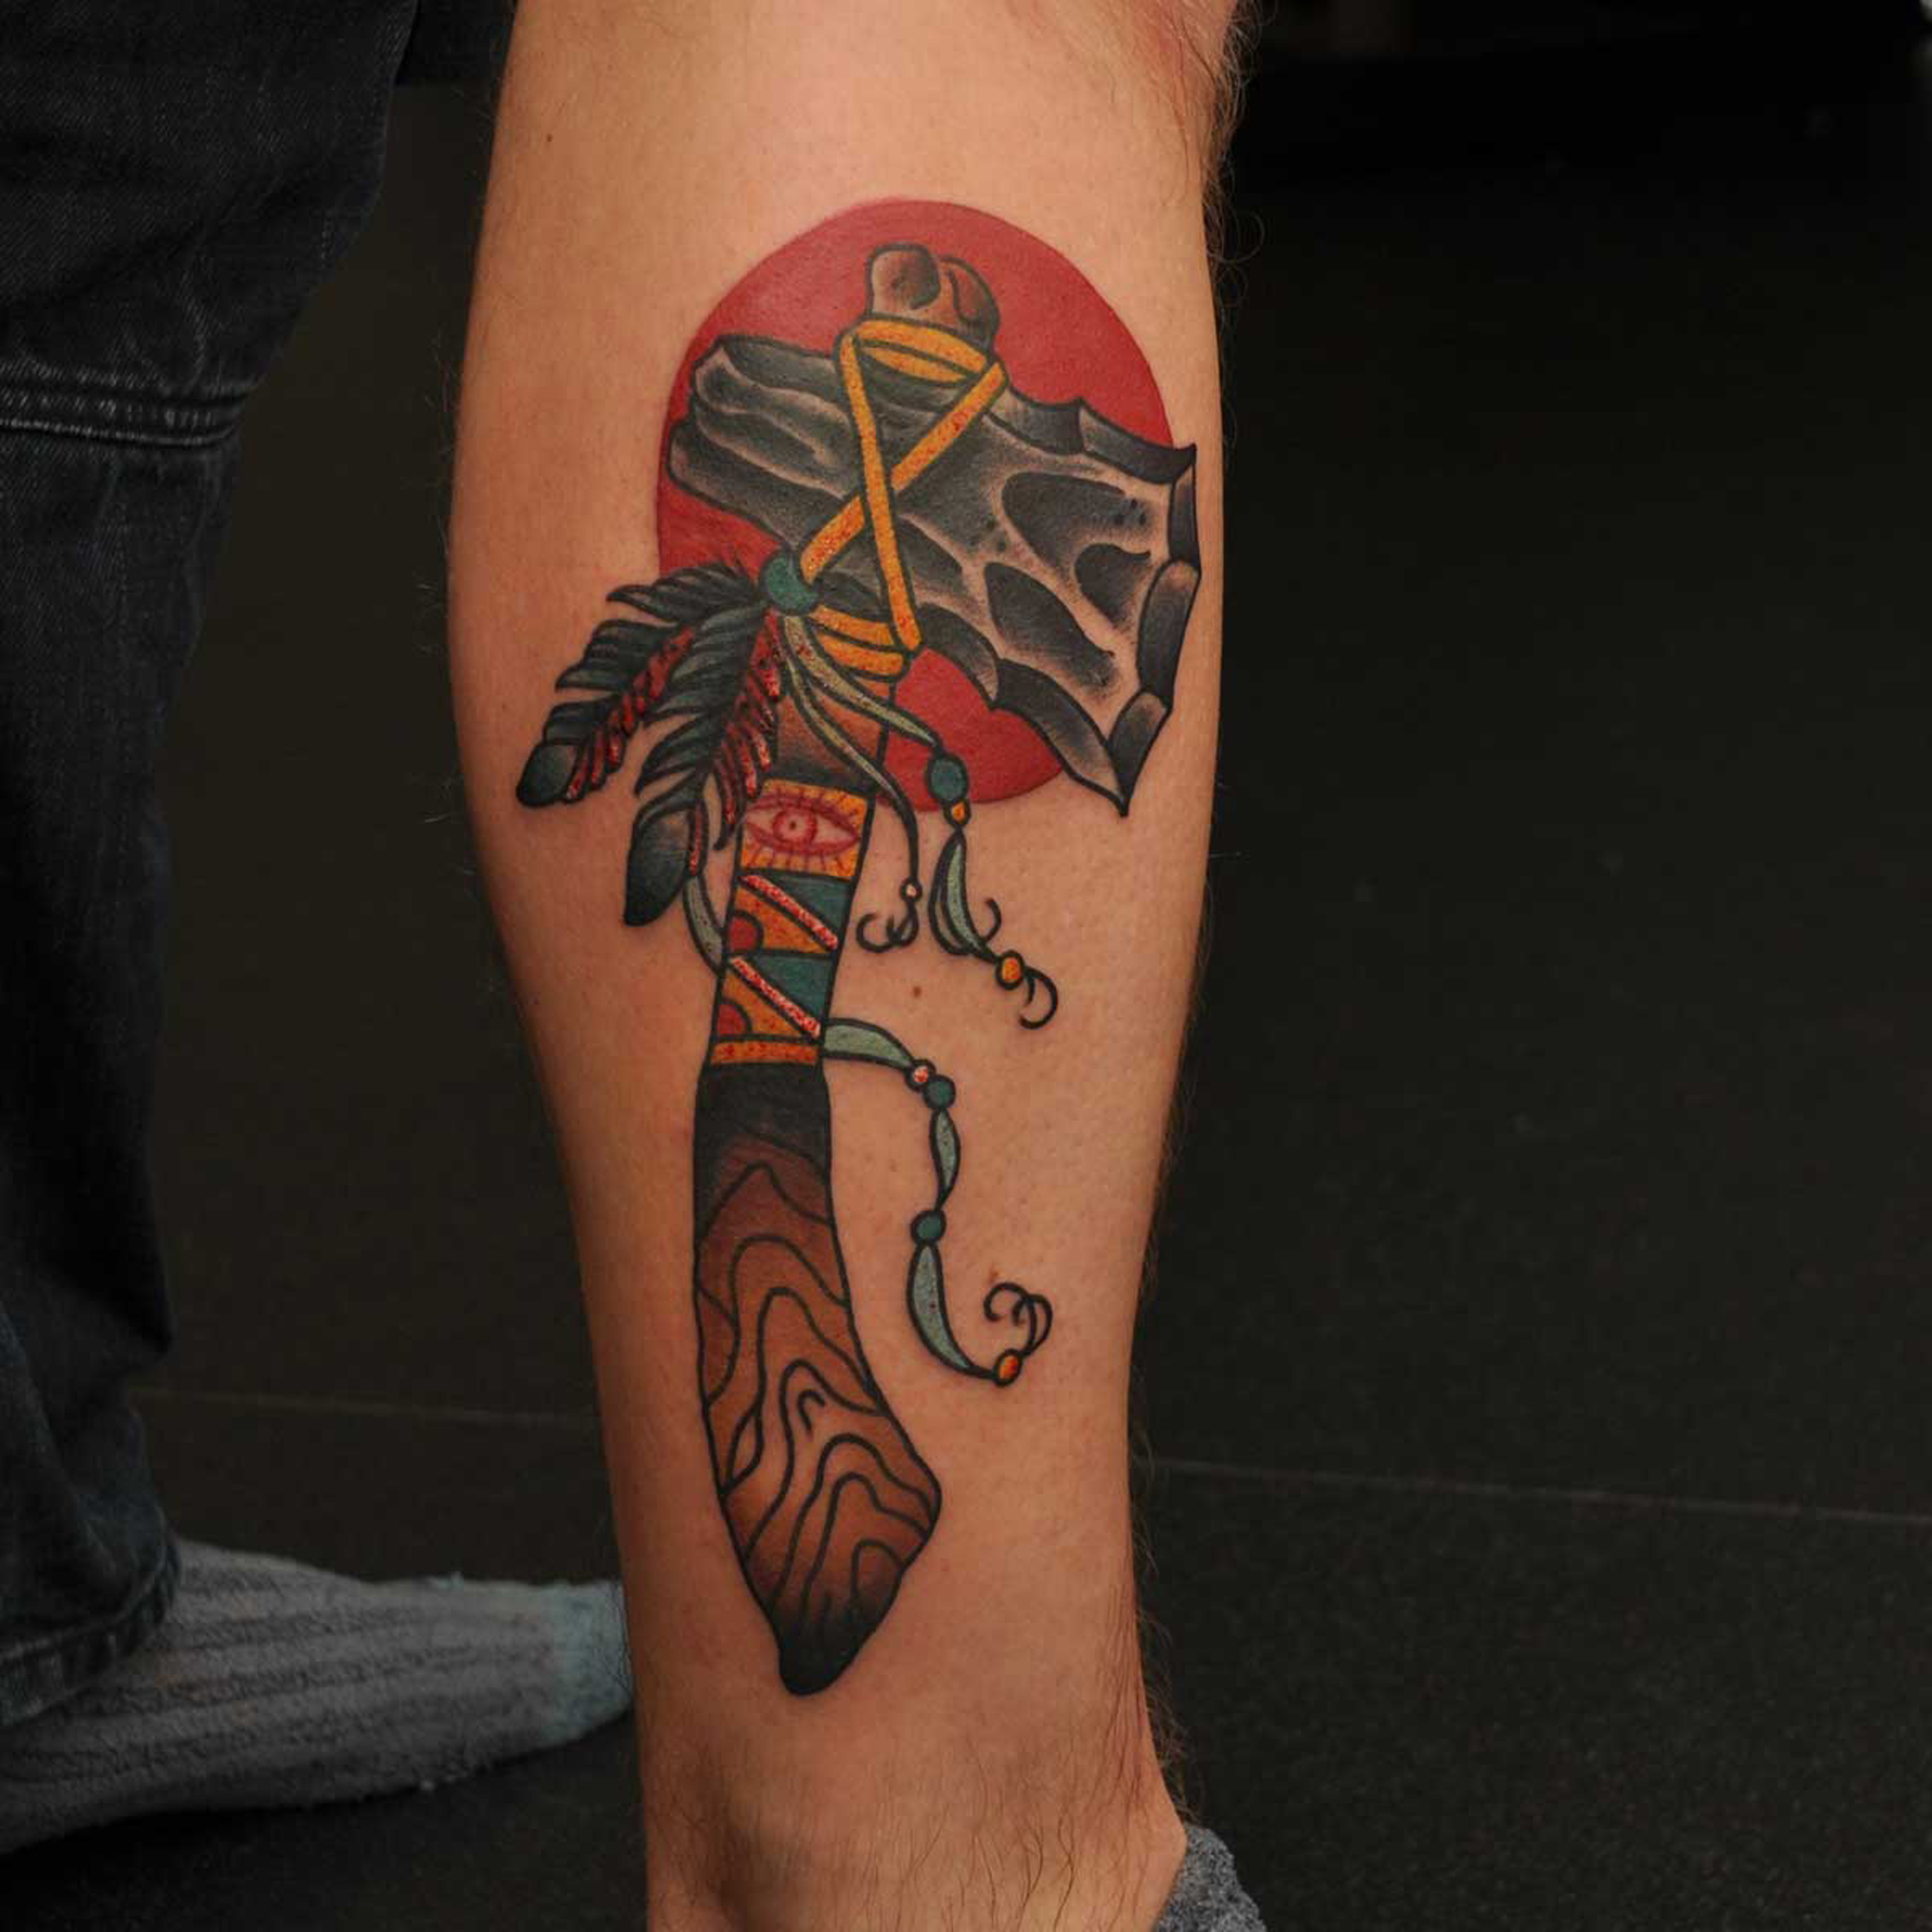 Tattoo Ideas Images: Tomahawk Tattoo Designs, Ideas And Meaning